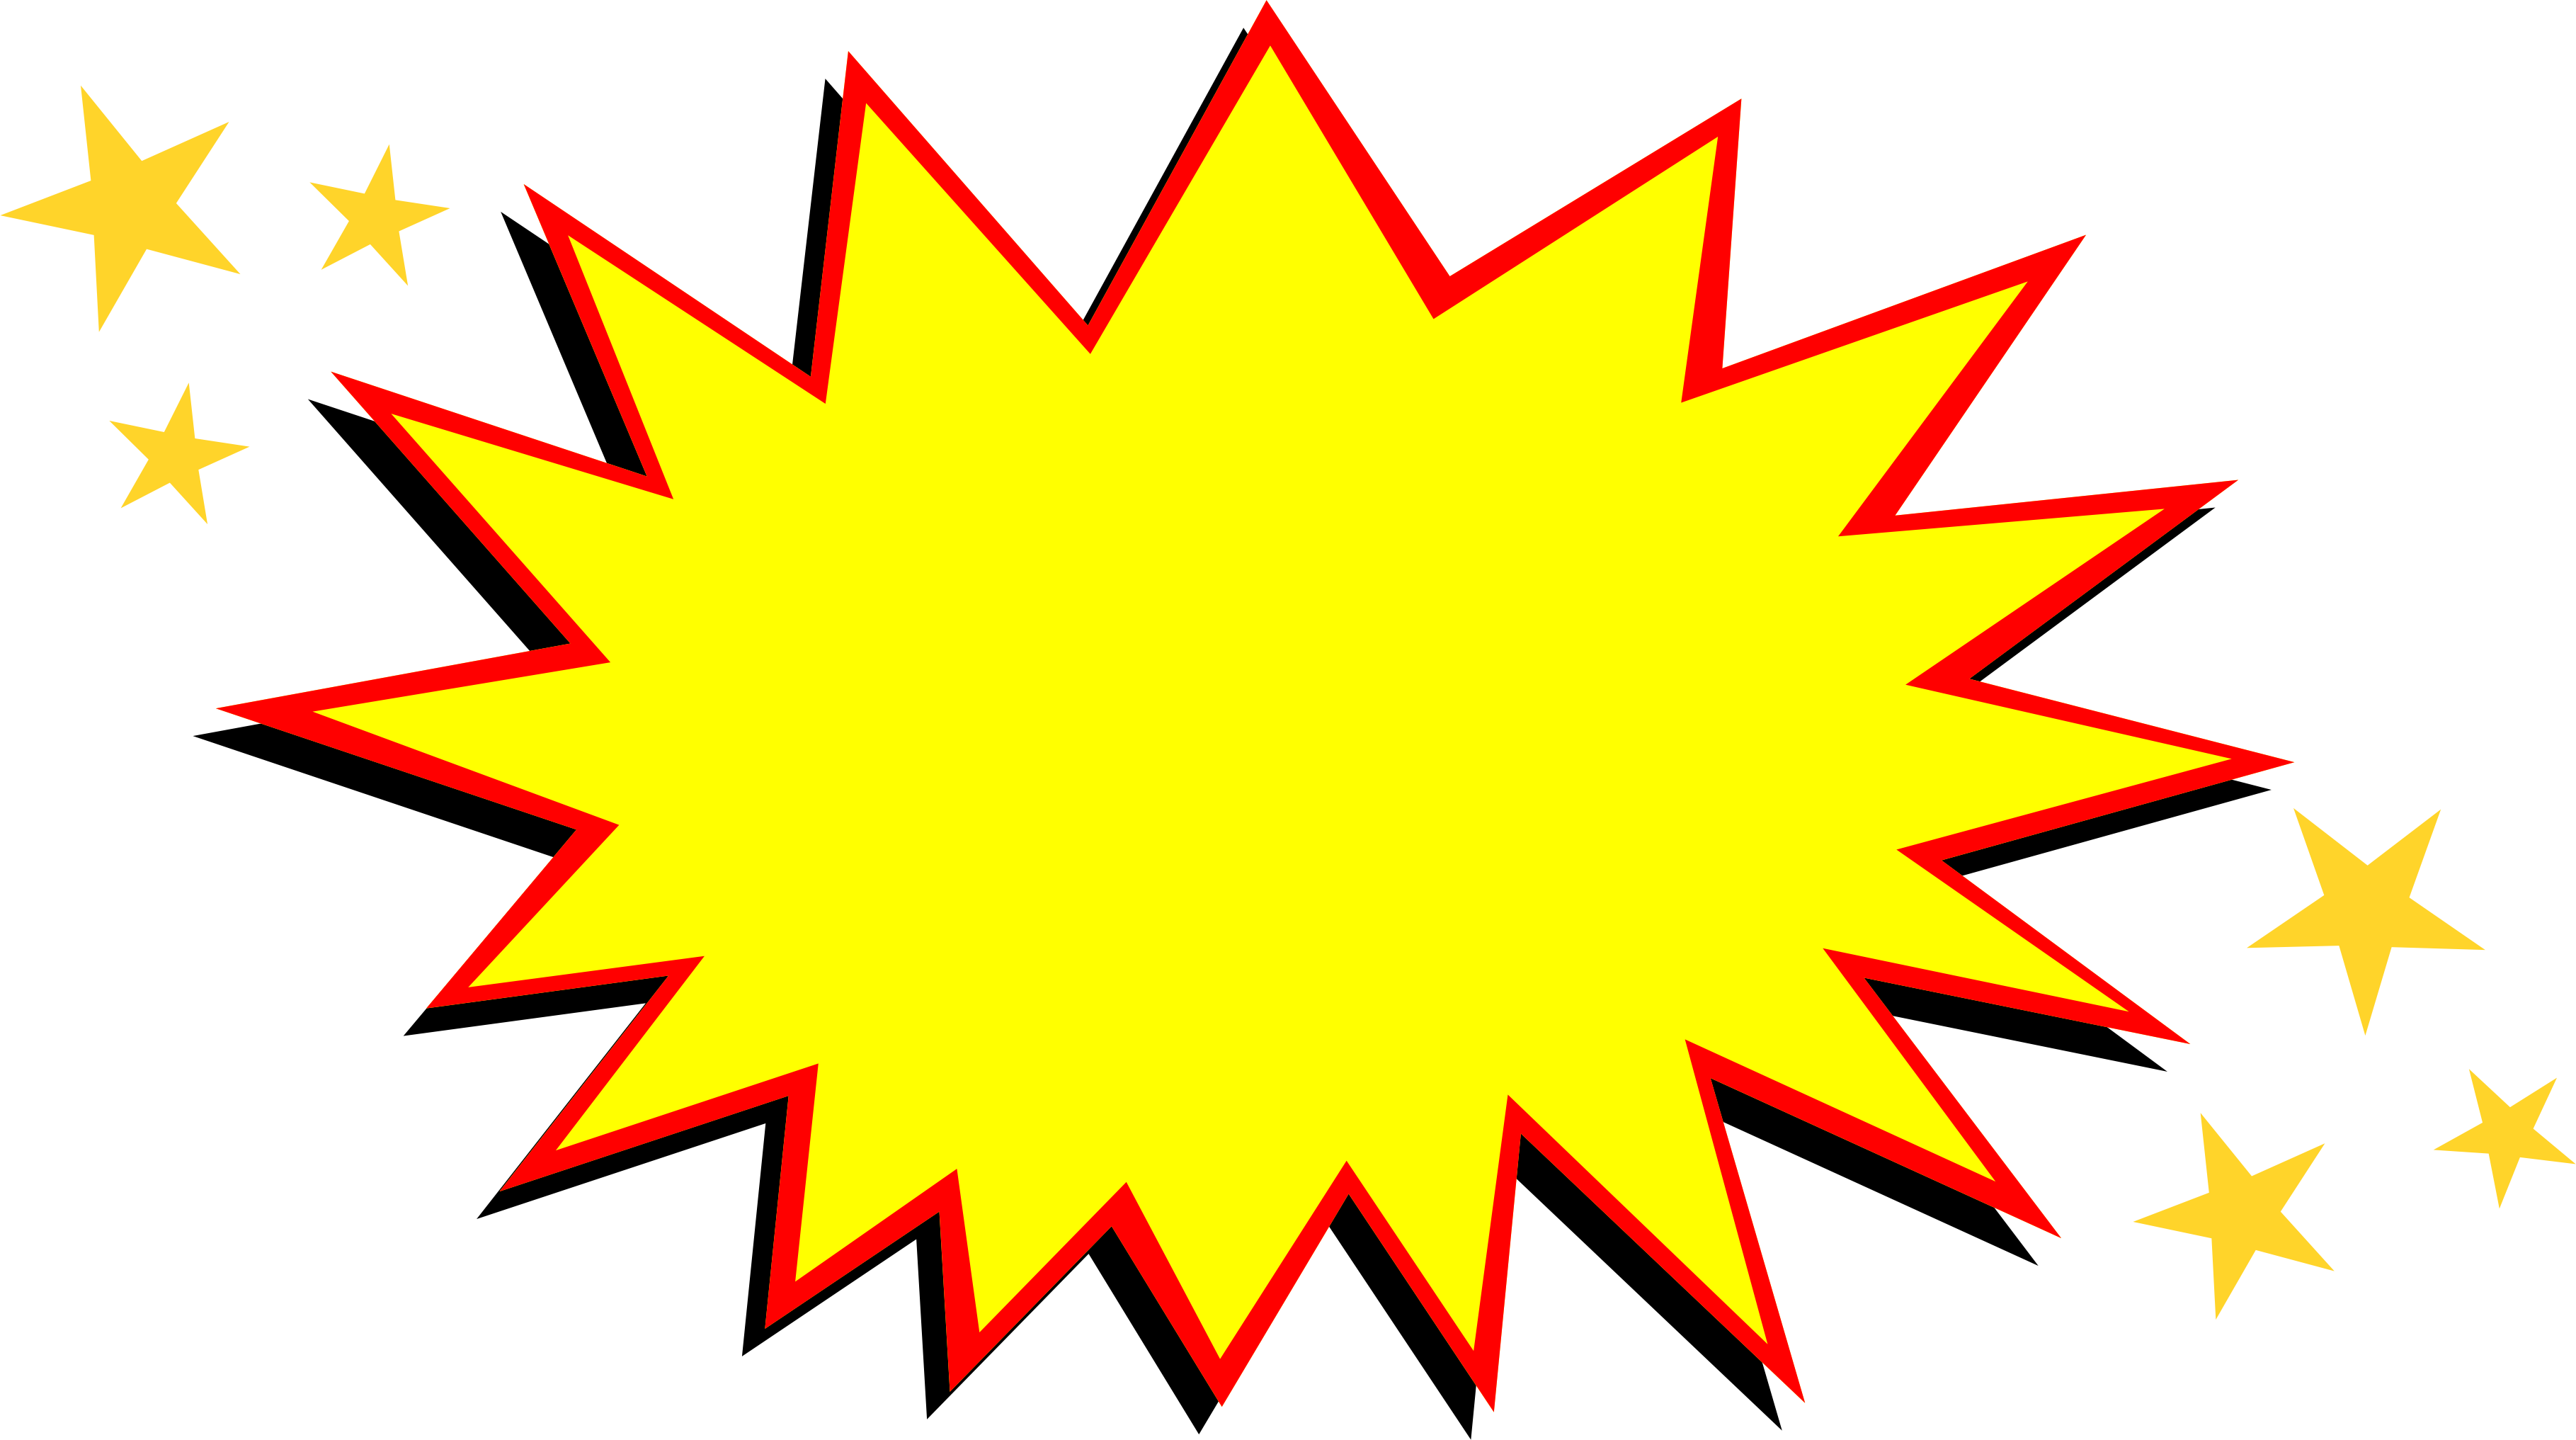 Boom clipart explosive. Explosion png station